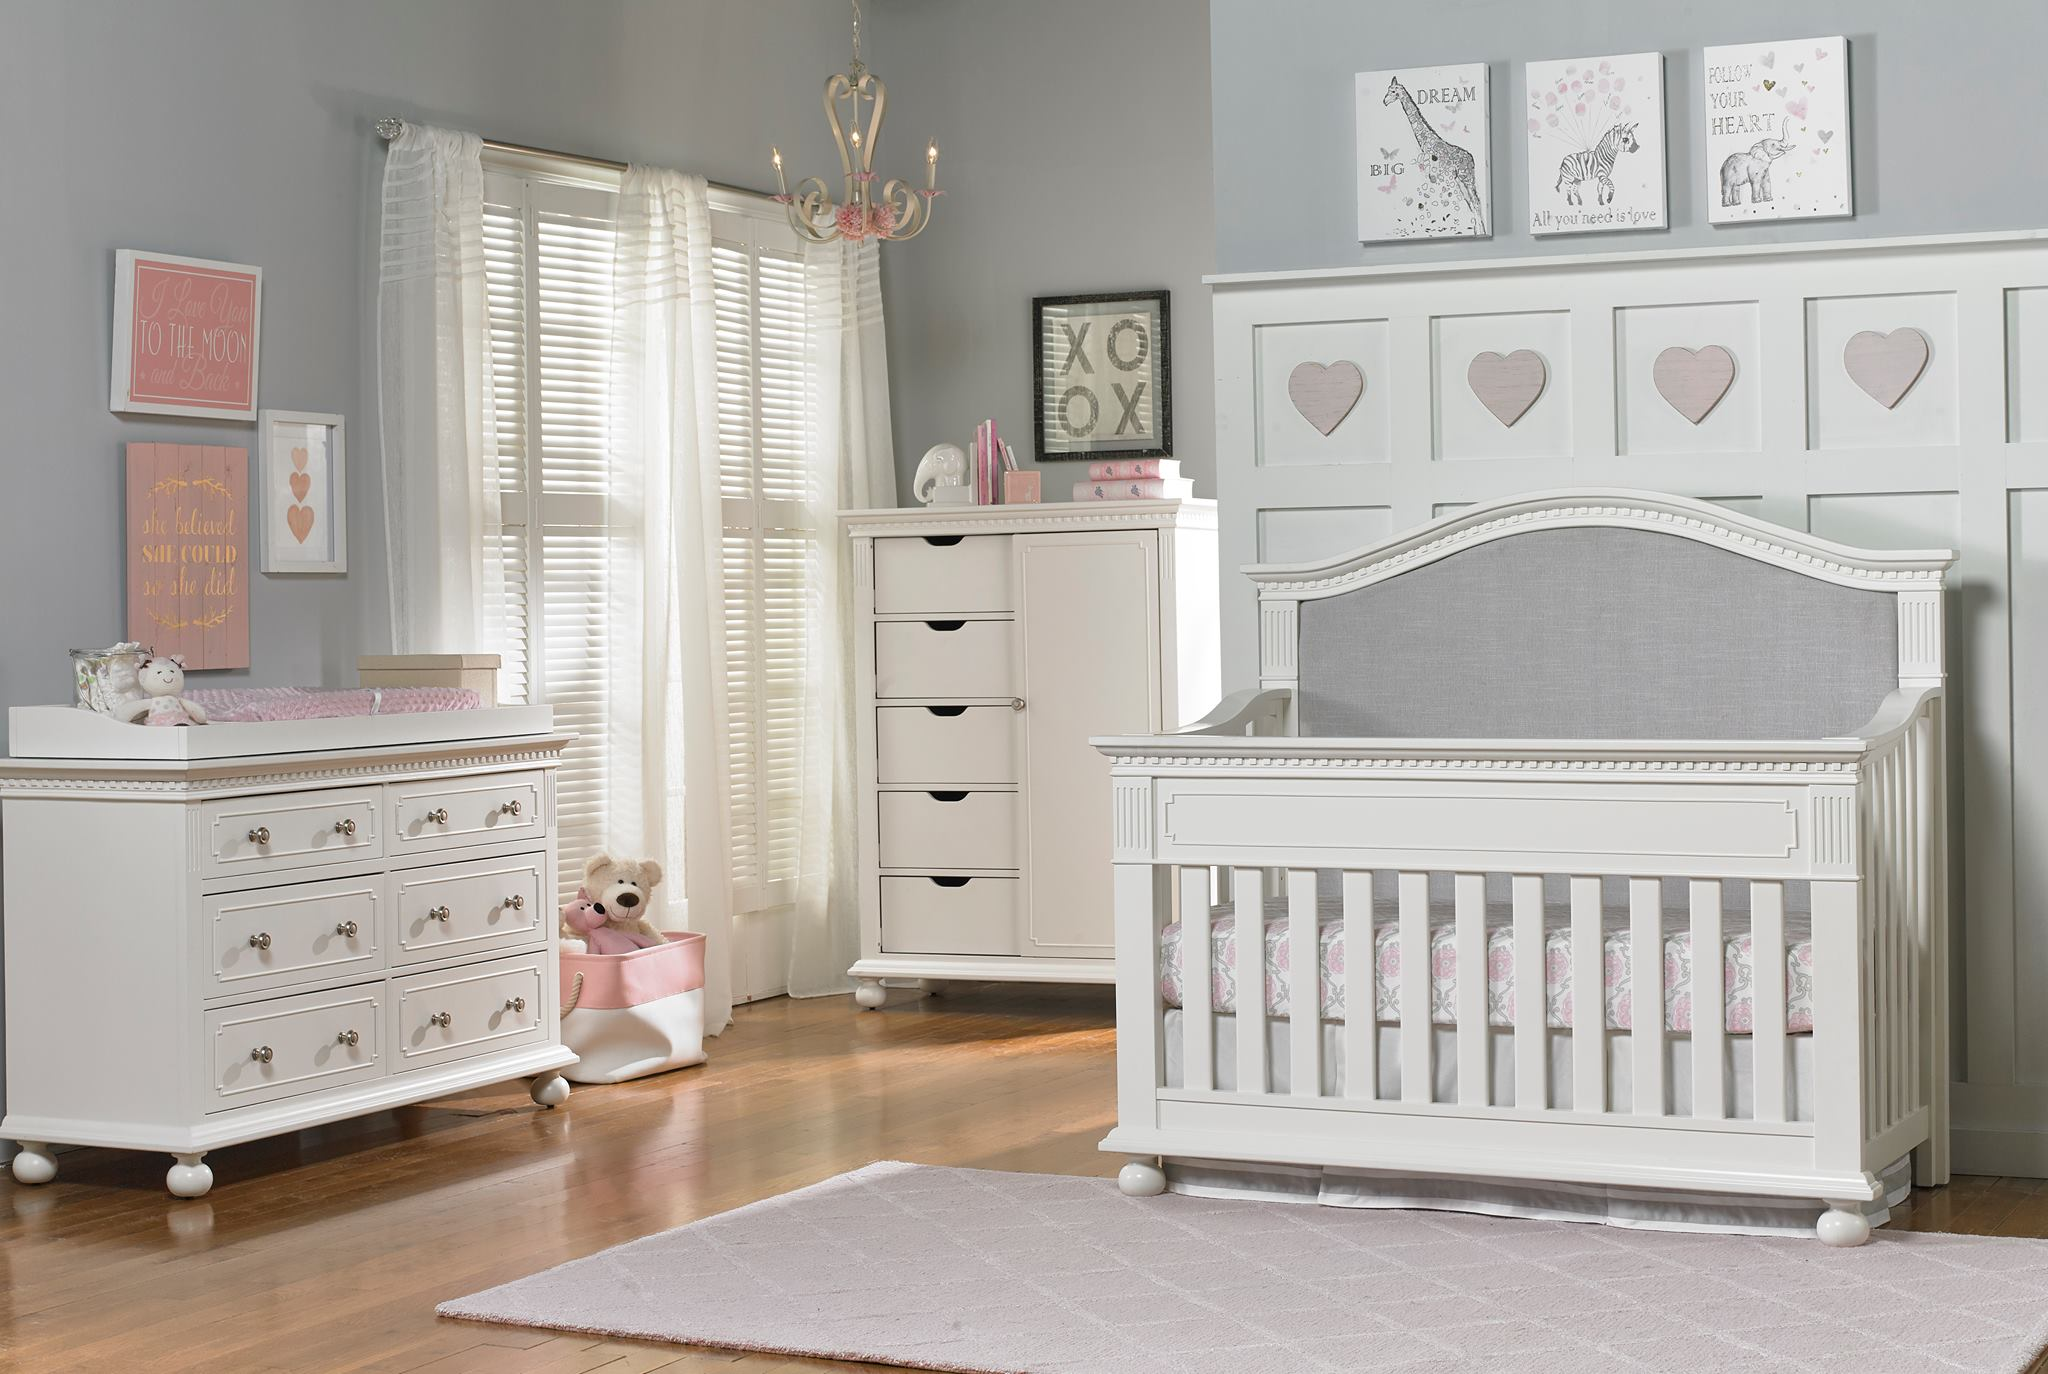 When you need quality durable furniture thats perfect for any childs room give us a call at 317 770 7700 to ask about our selection